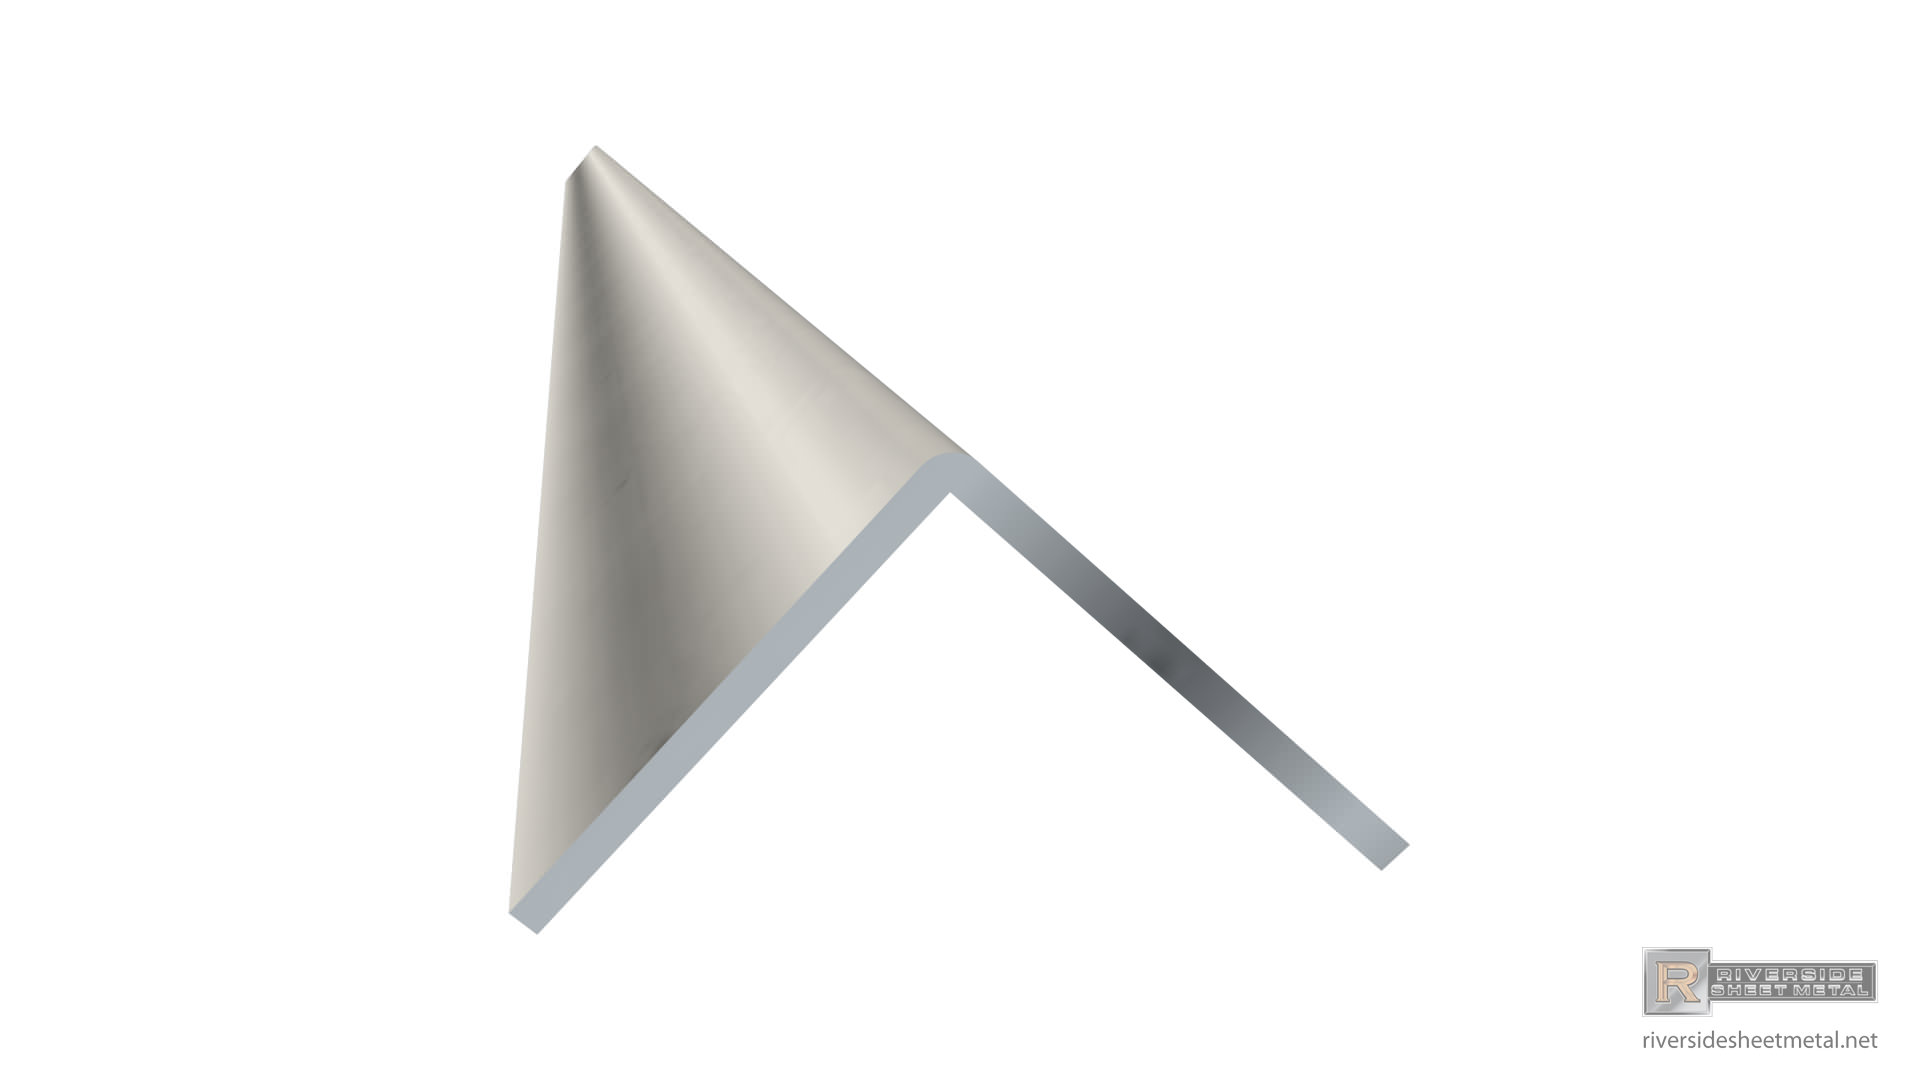 Aluminium Corner Guards : Corner guard wall edge metal aluminum stainless steel